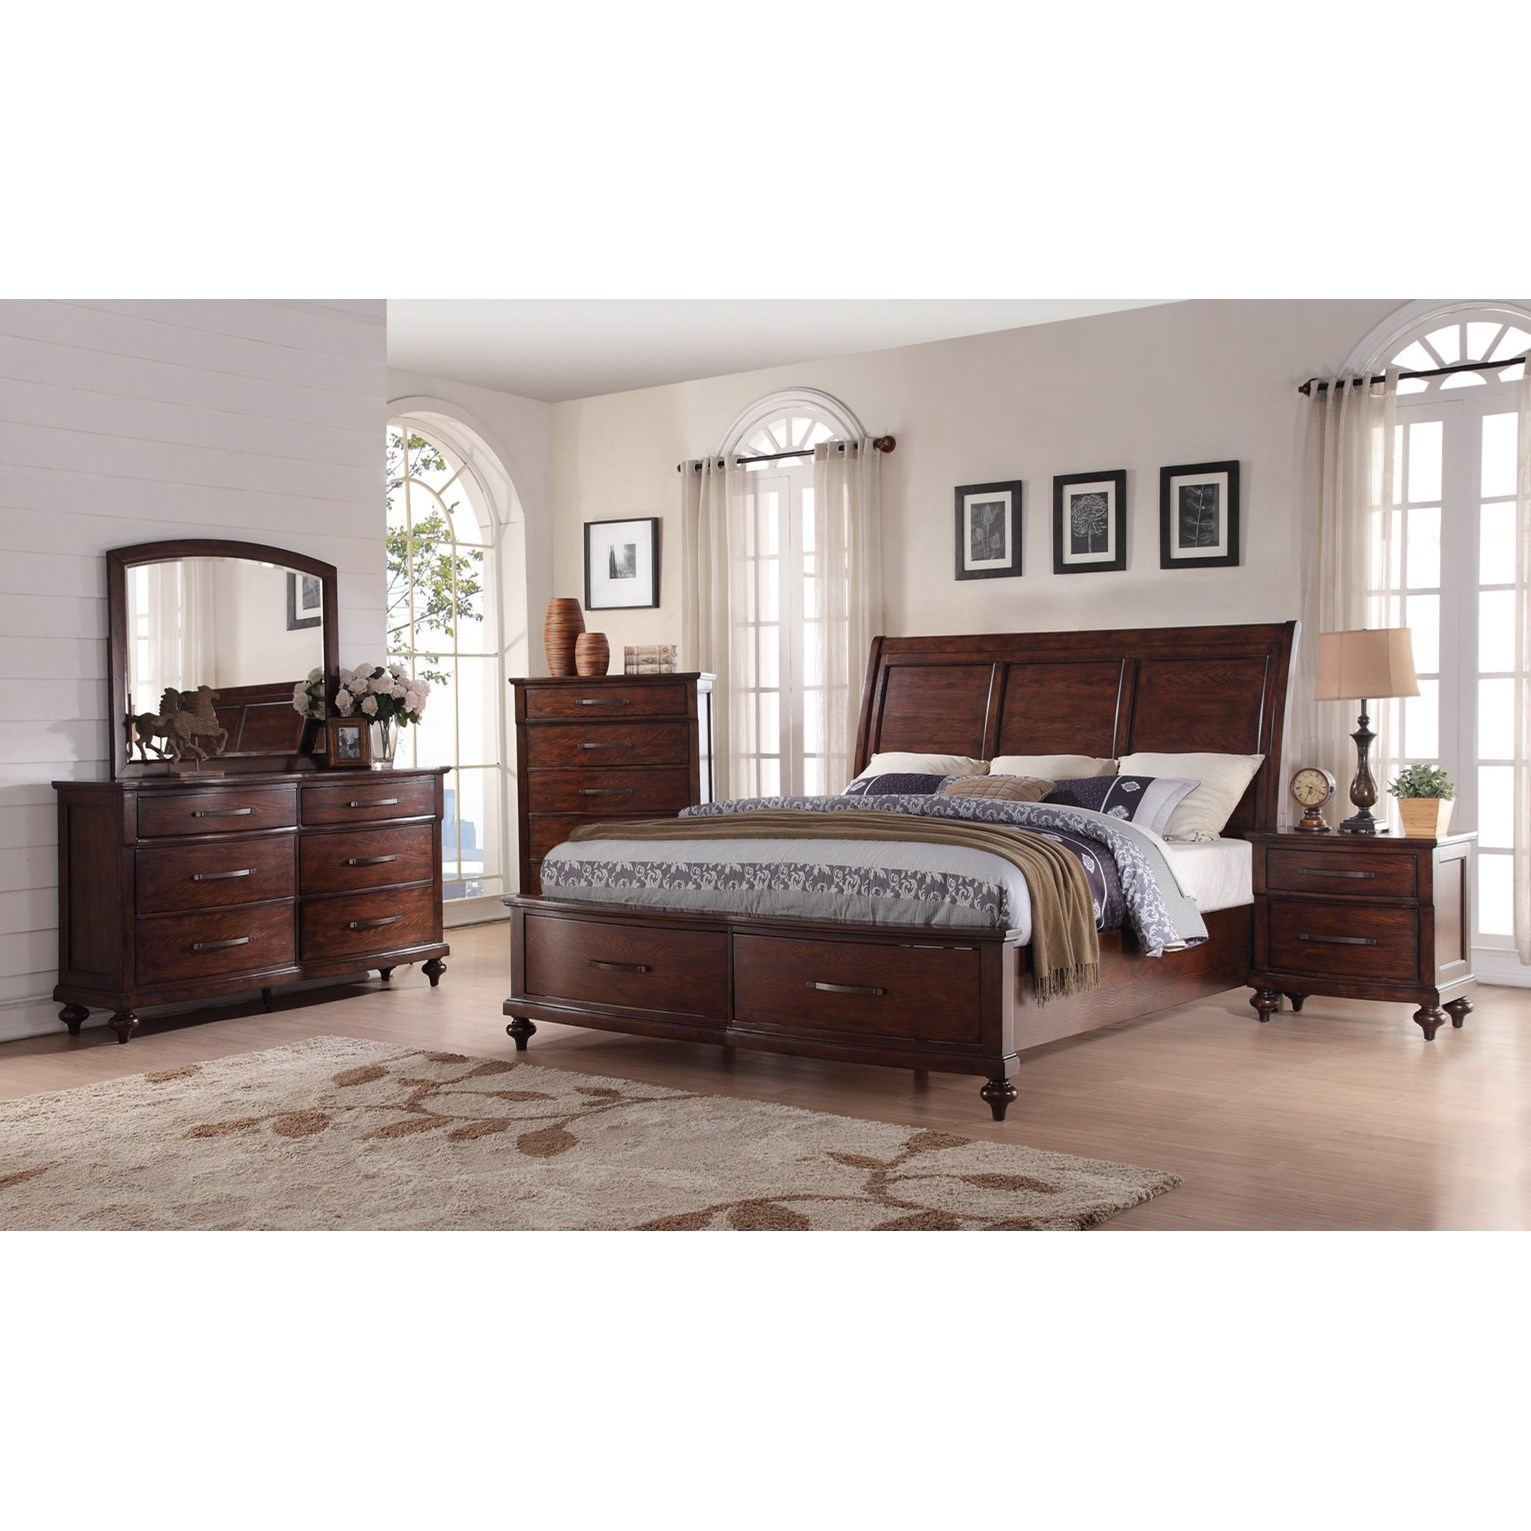 New Classic La Jolla Queen Storage Bed With Panel Headboard Dream Home Furniture Headboard